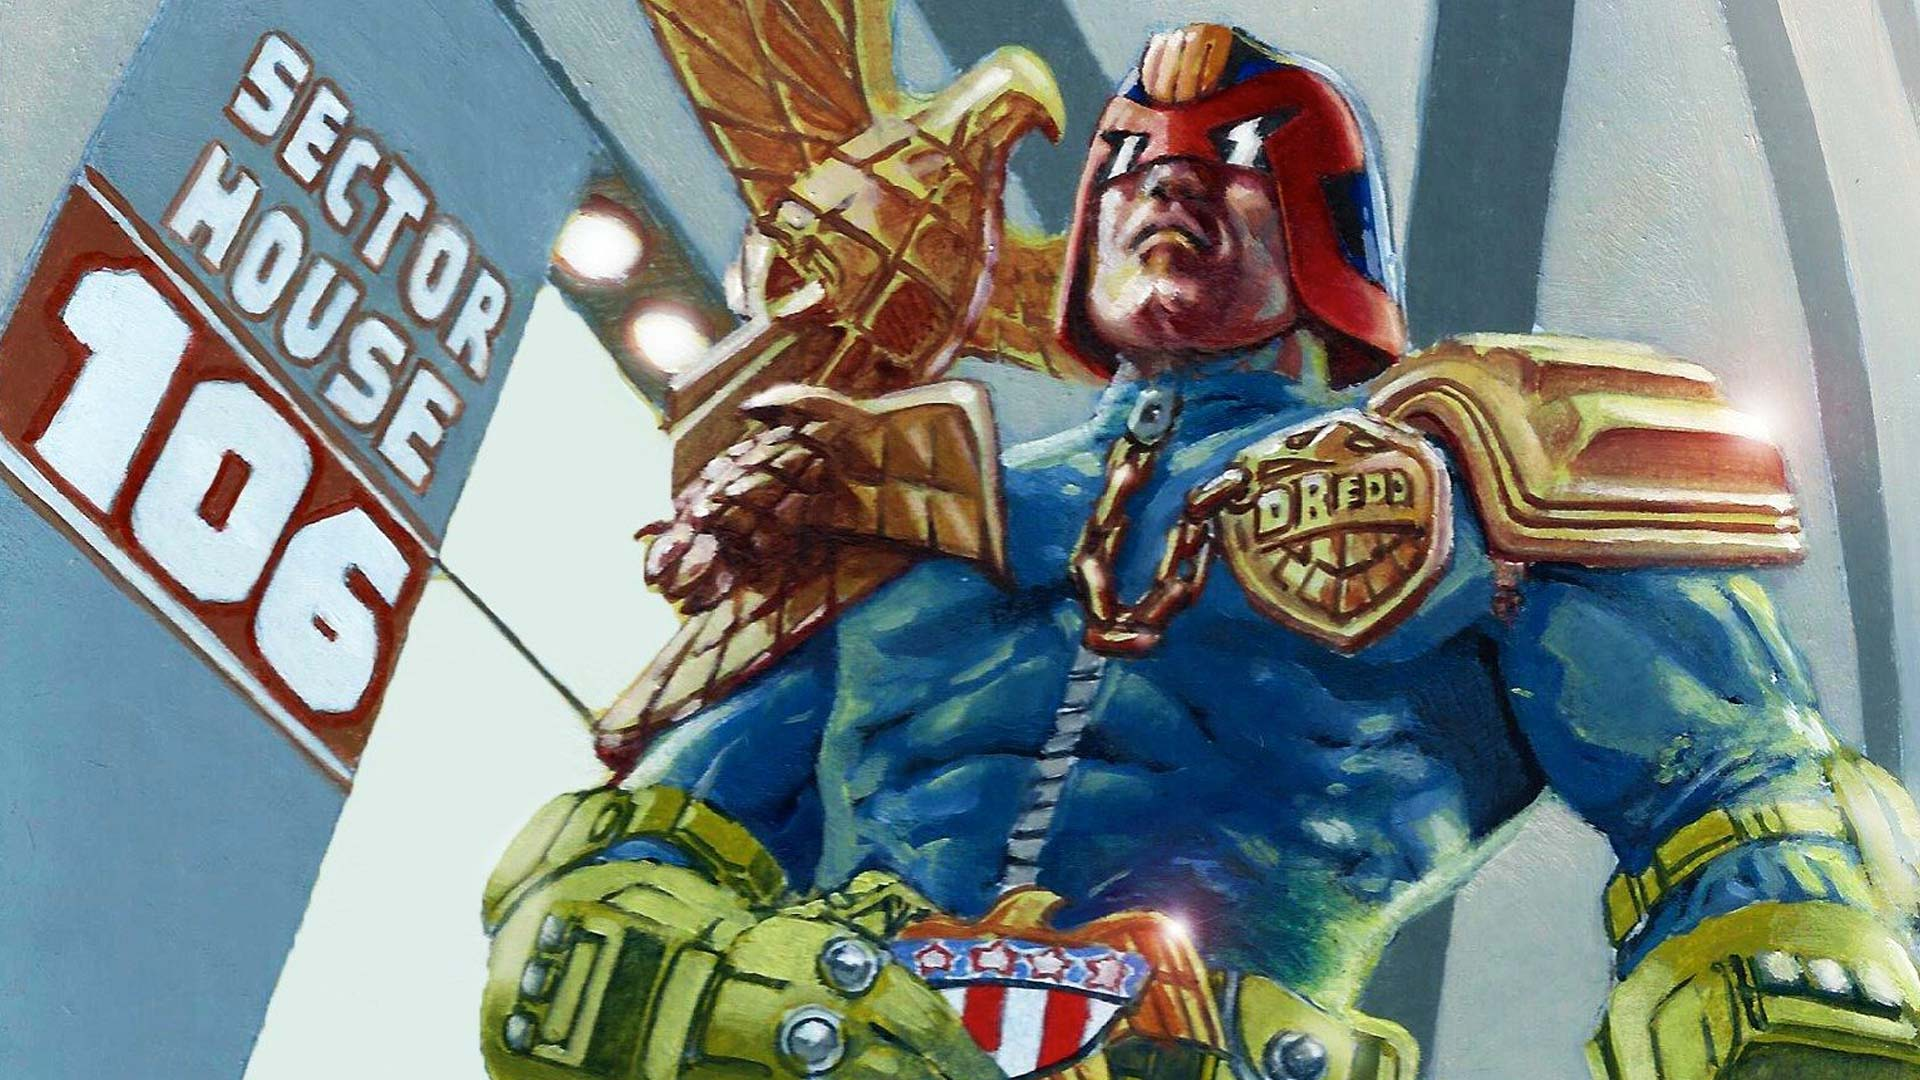 Able Judge Dredd Complete Base Collection Collector Cards Non-sport Trading Cards